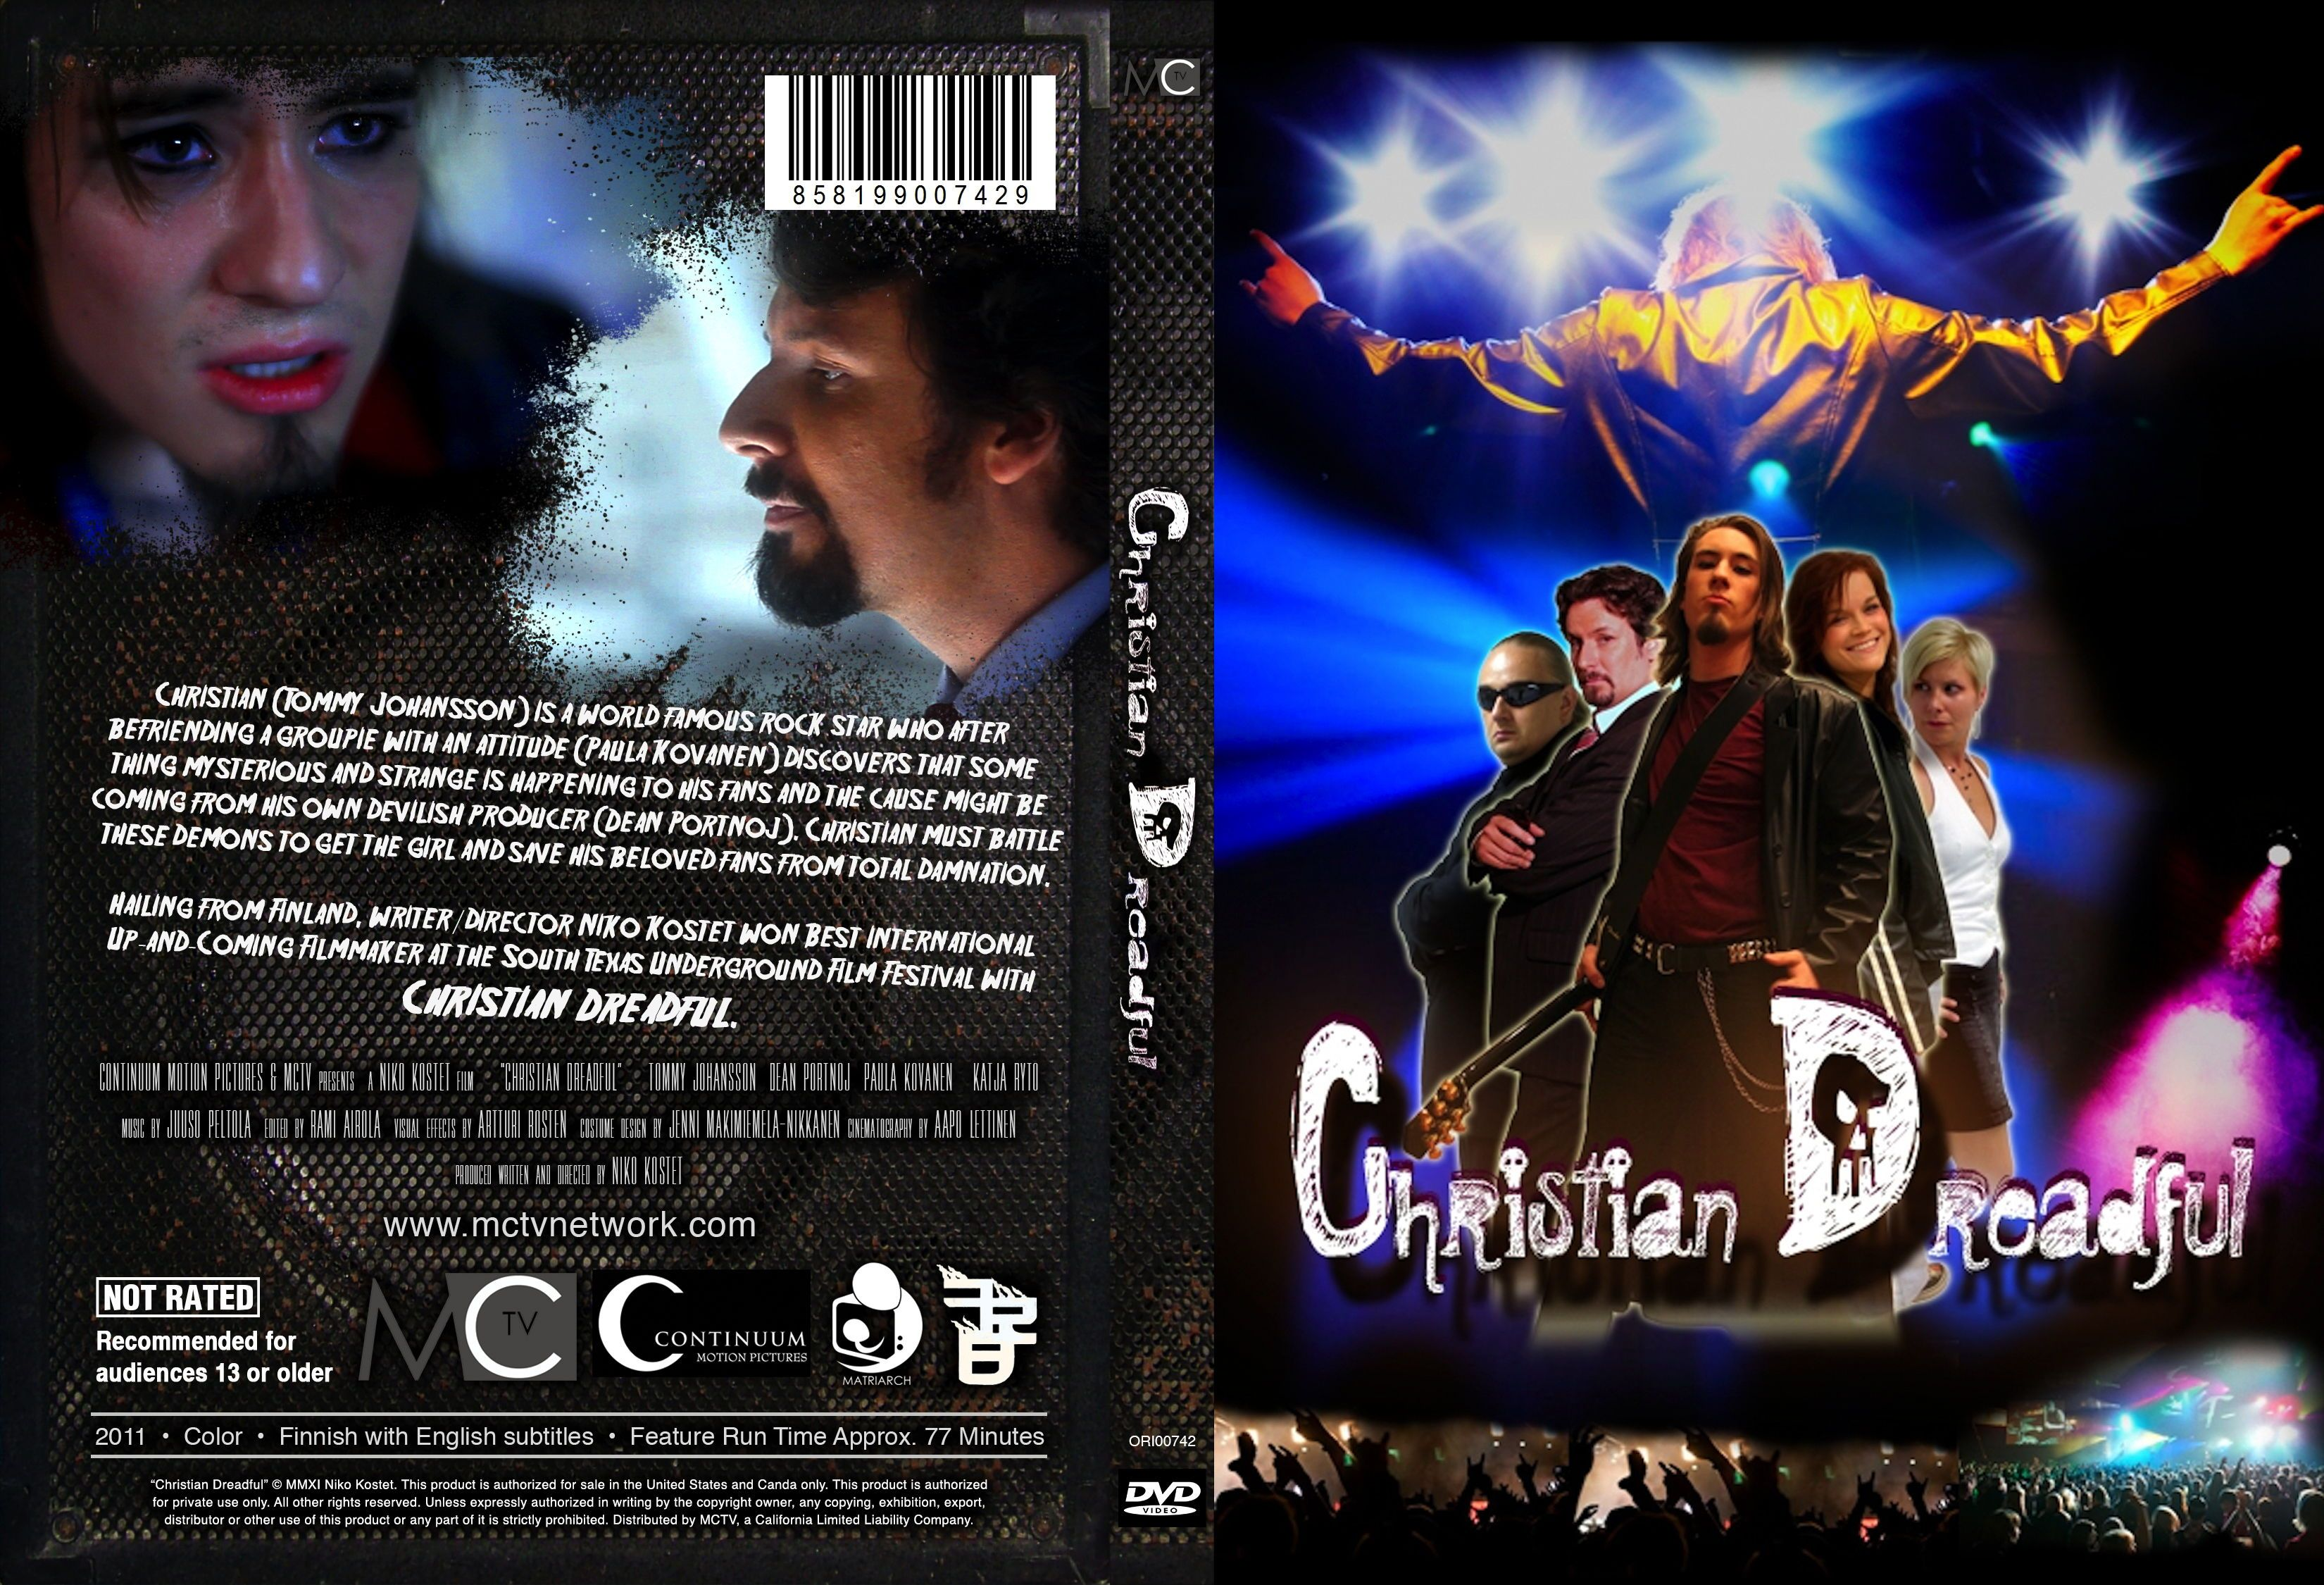 Christian Dreadful is a dark comedy from Finland that is making its DVD  debut in the